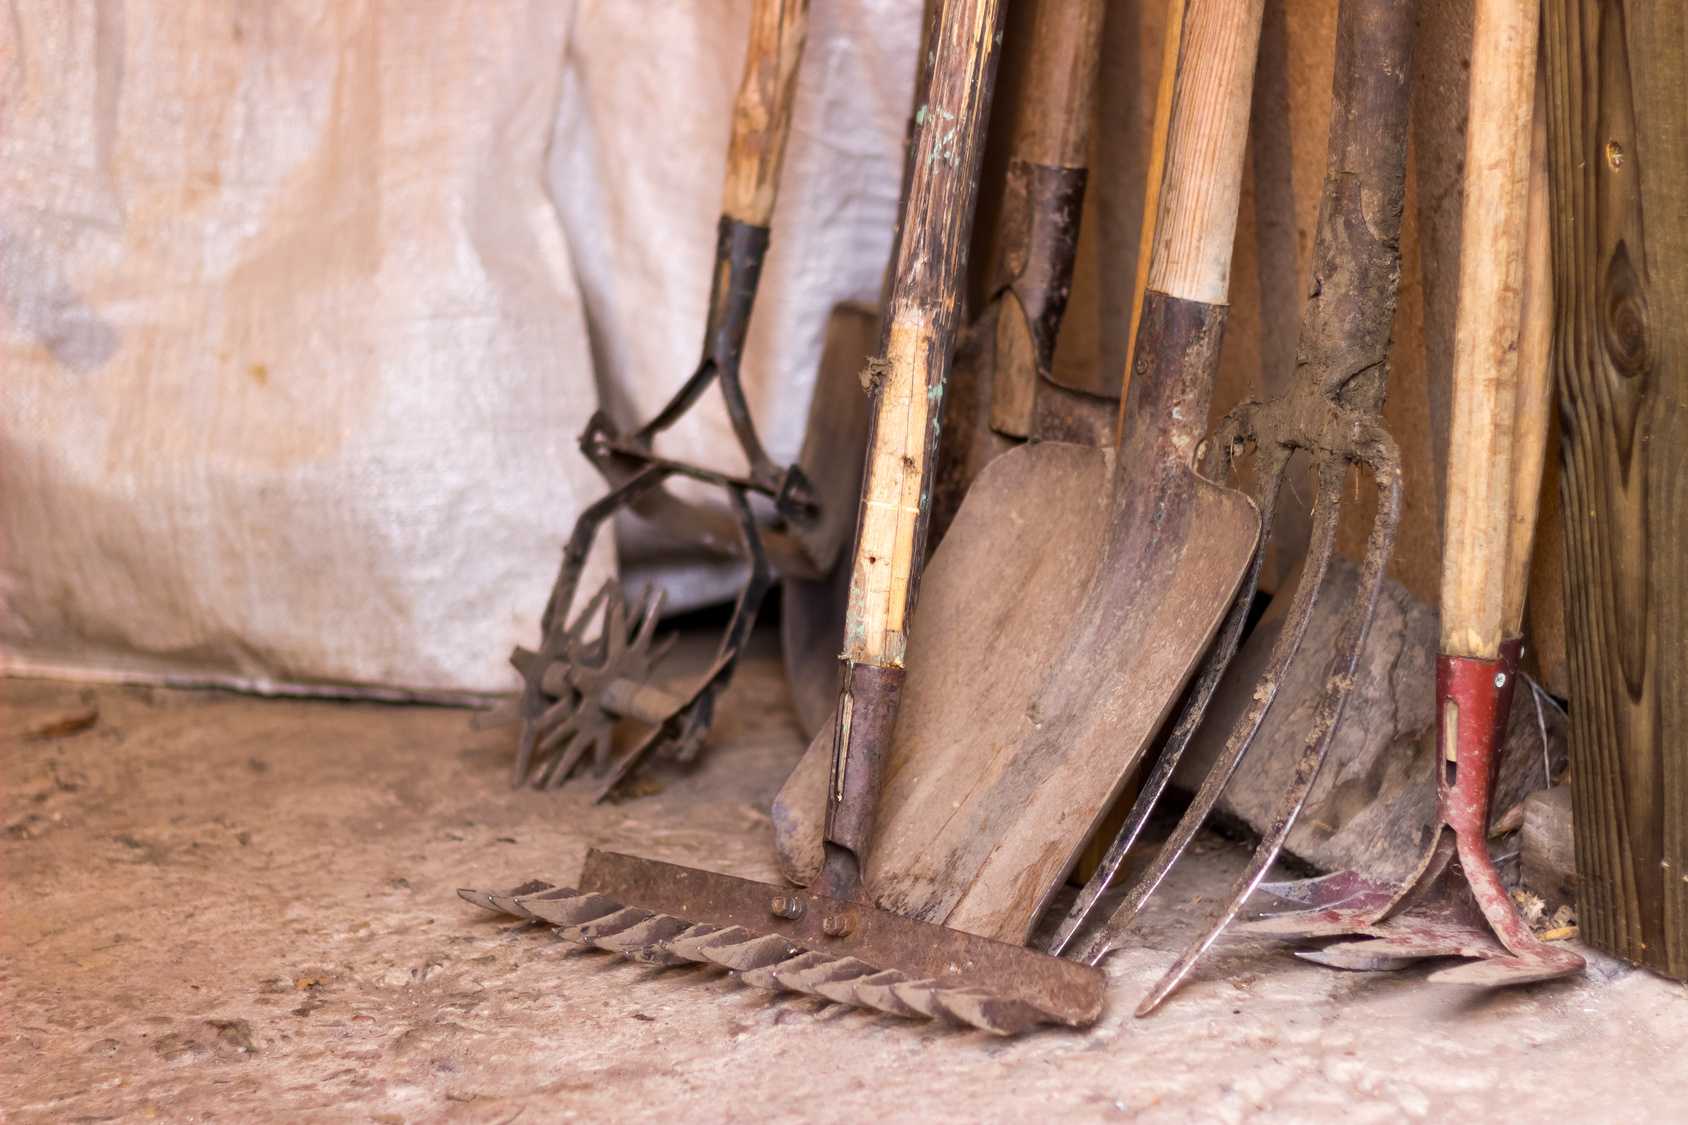 A row of dirty garden tools